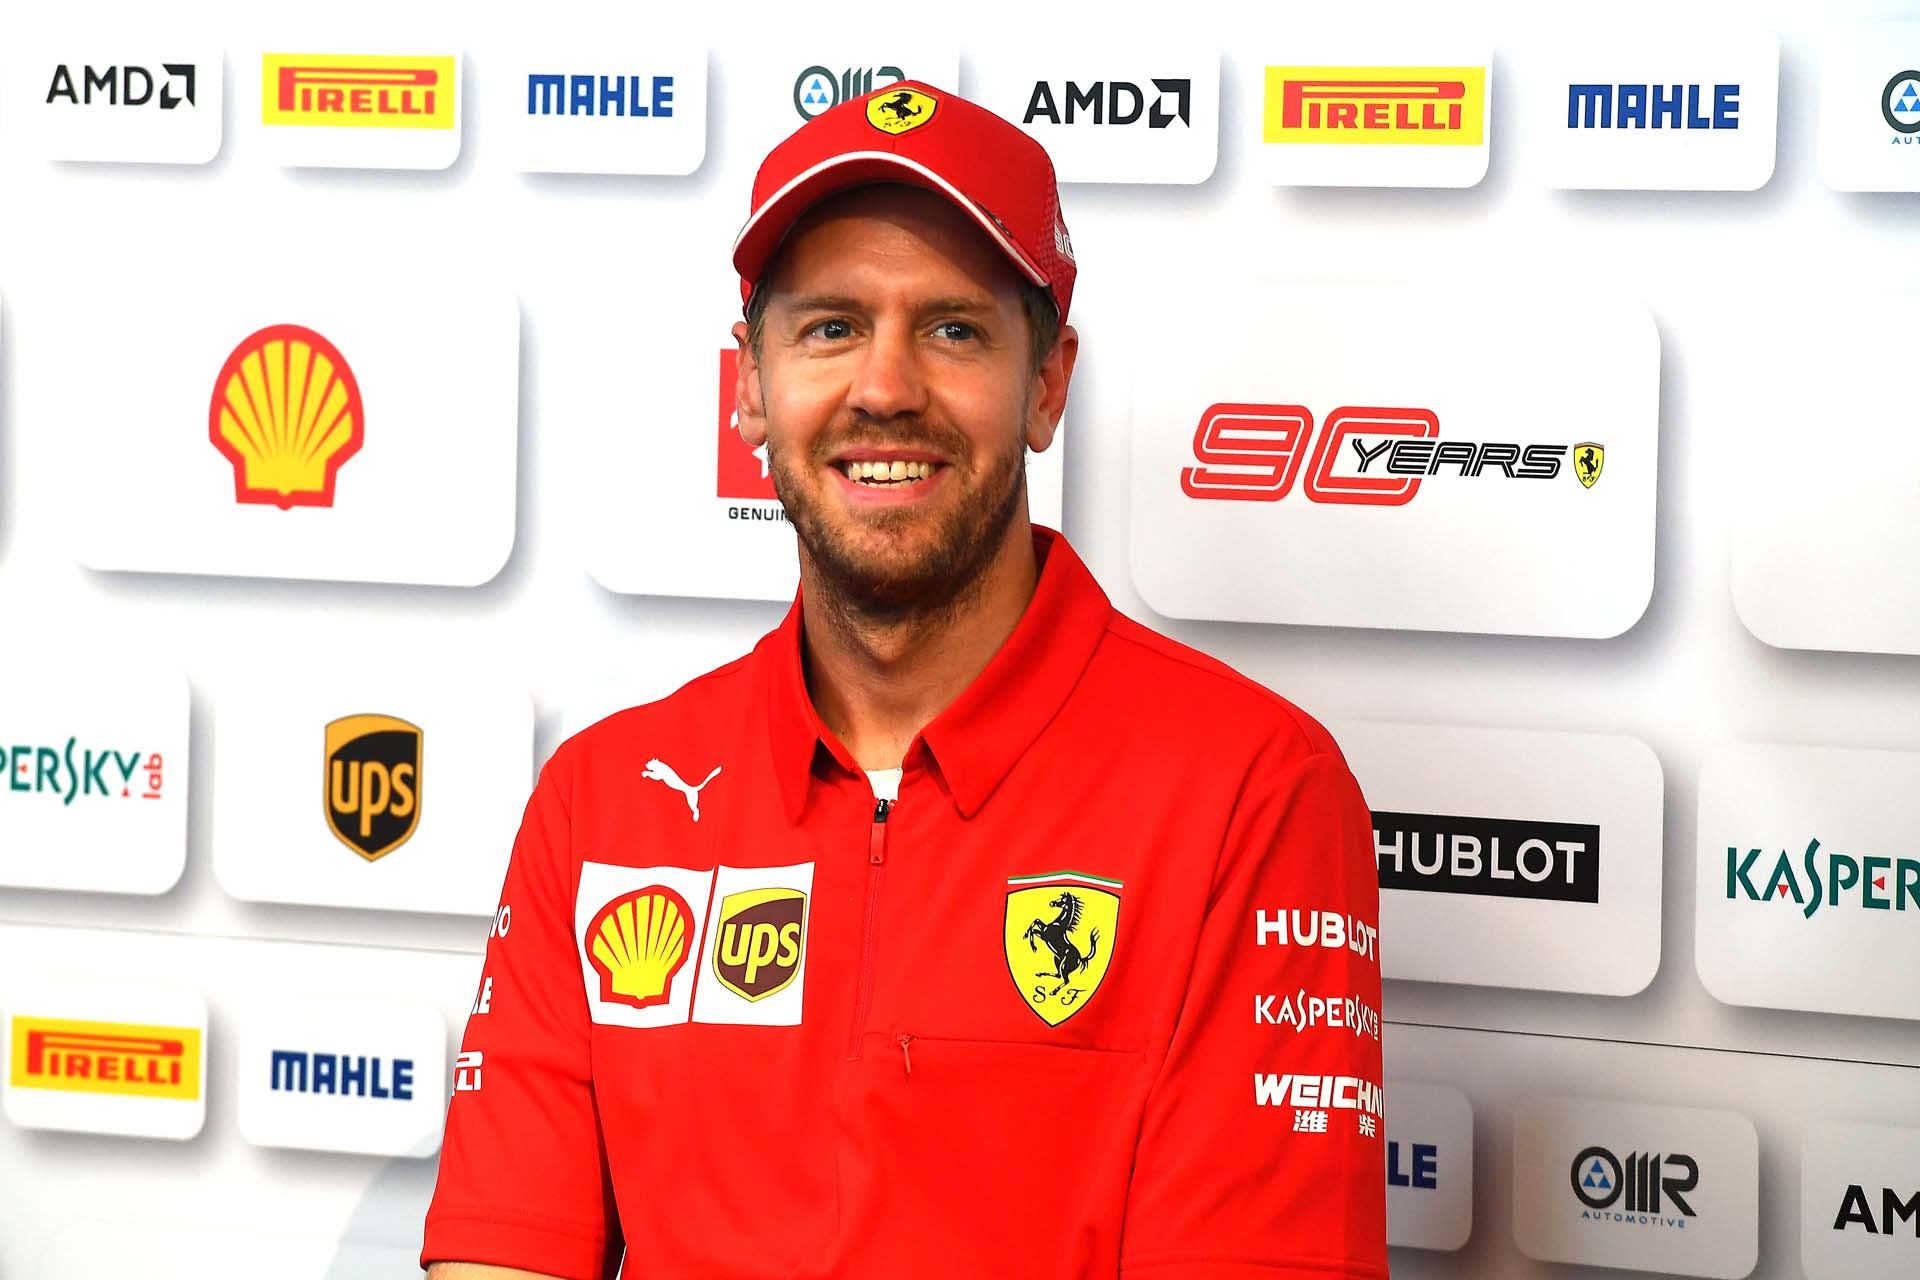 GP GRAN BRETAGNA F1/2019 - GIOVEDÌ 11/07/2019 credit: @Scuderia Ferrari Press Office Sebastian Vettel